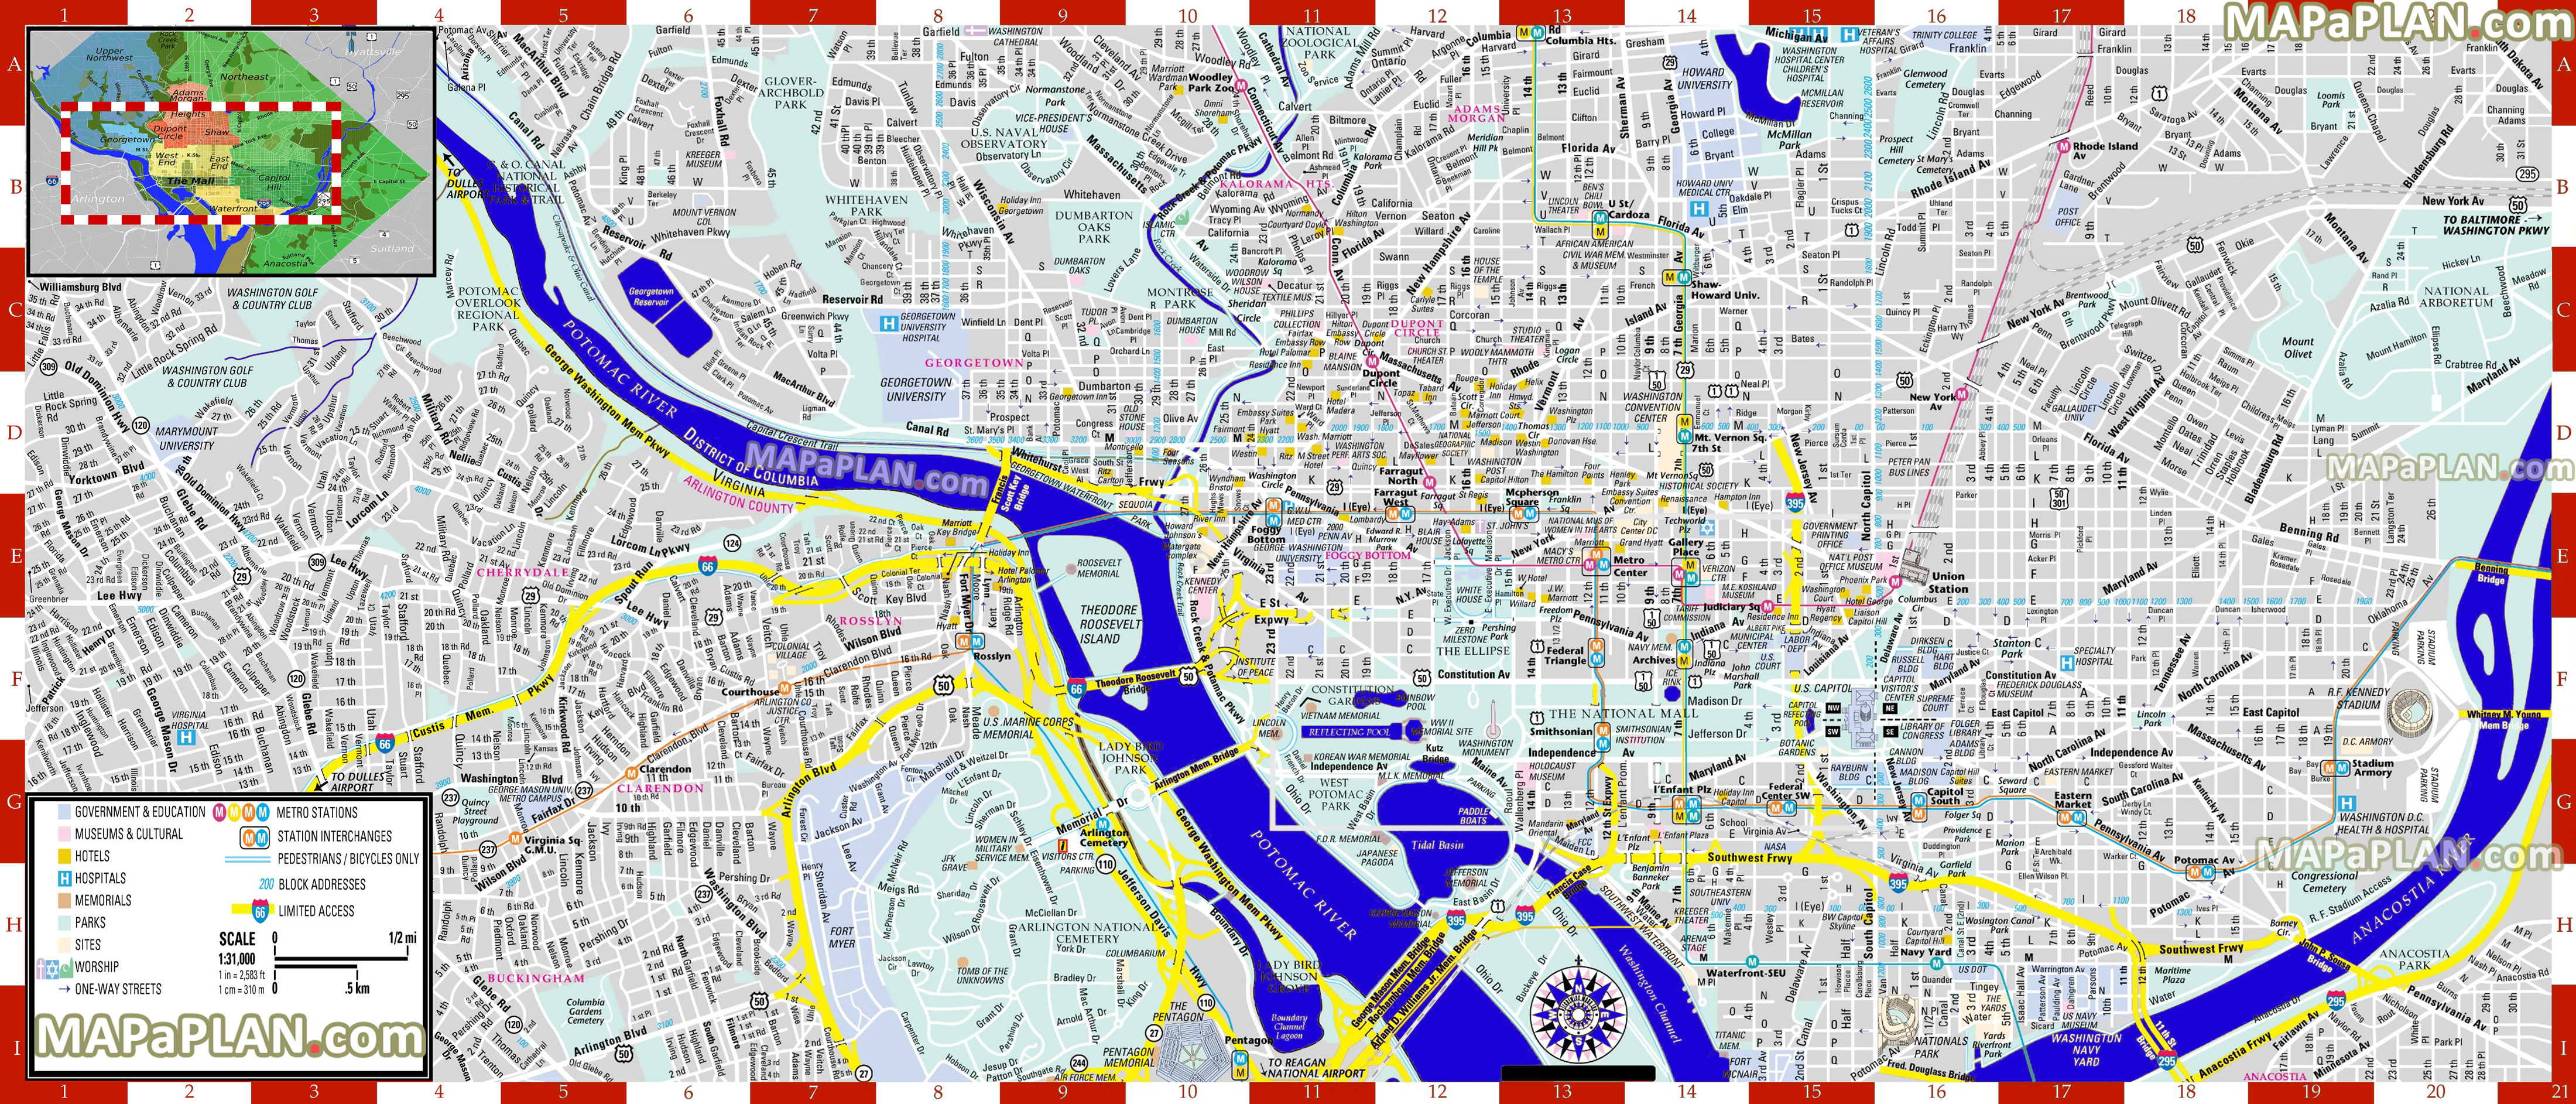 Washington Dc Maps - Top Tourist Attractions - Free, Printable City - Printable Street Maps Free